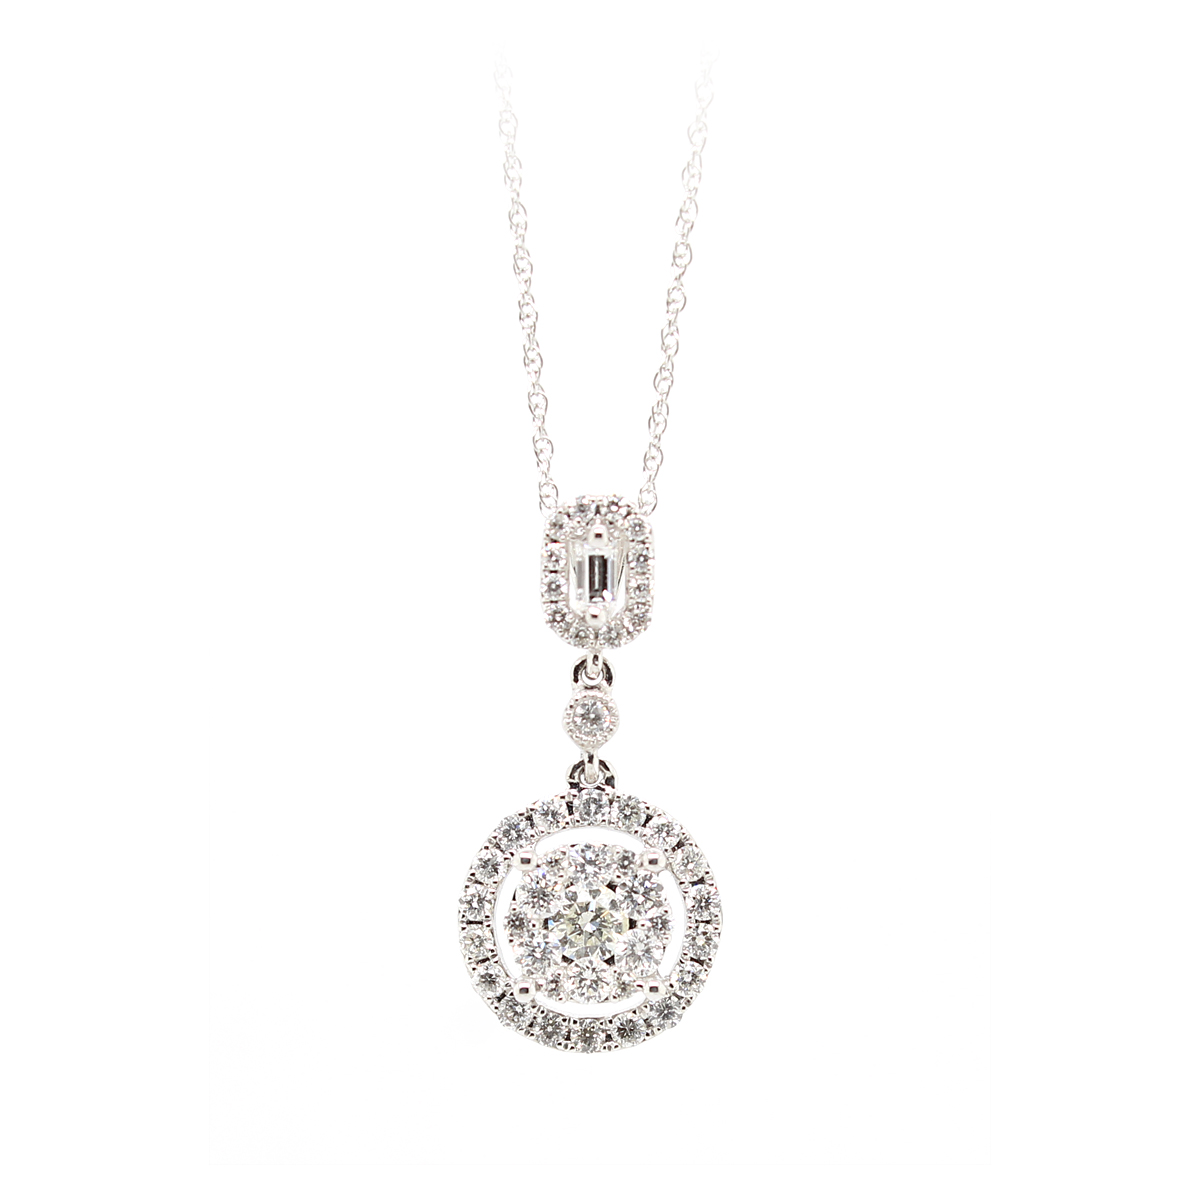 18 Karat White Gold Circular Diamond Halo Pendant Necklace